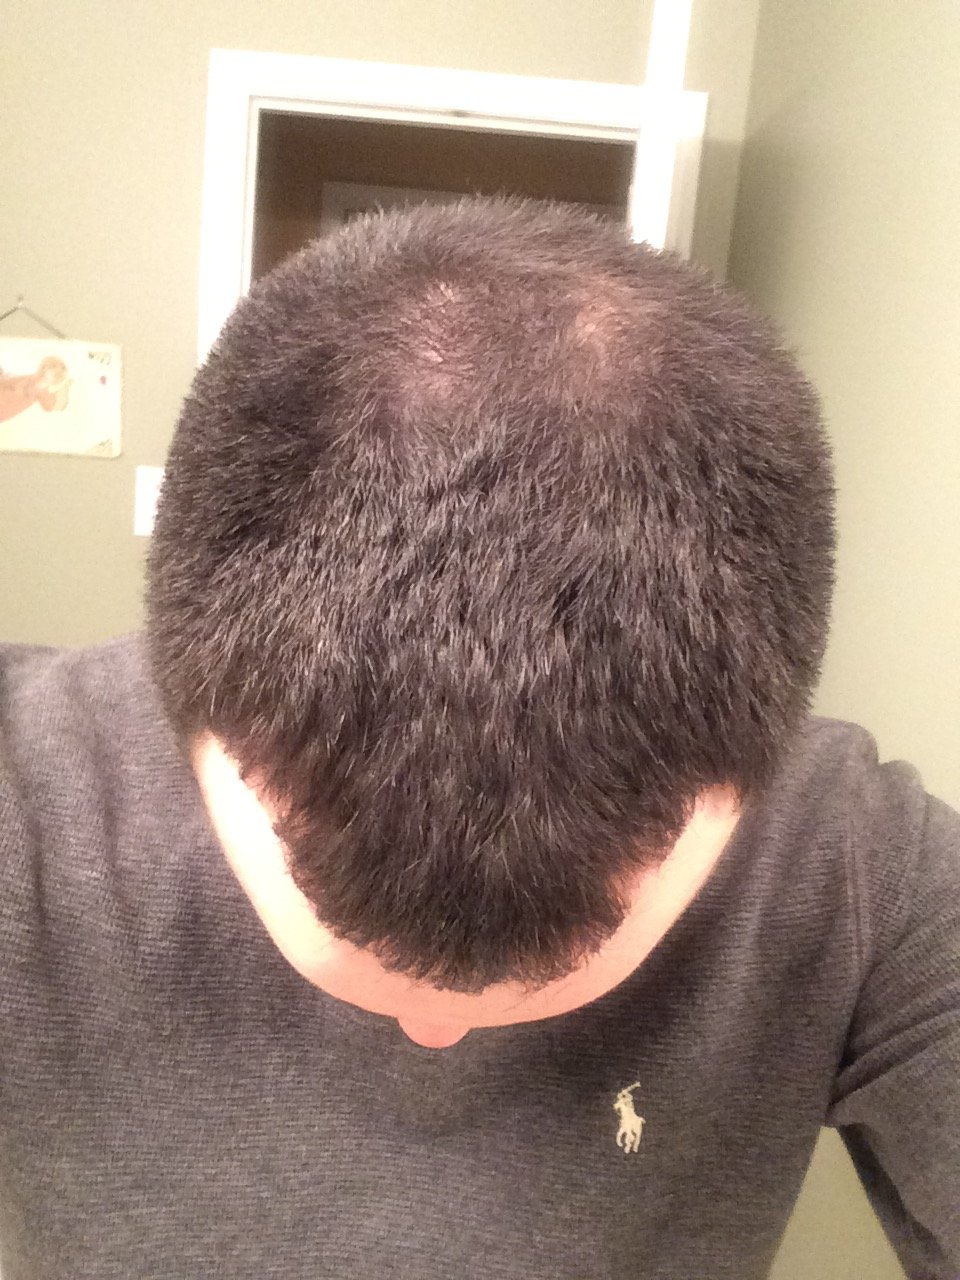 Big 3 After 1 5 Years Currently 25 Years Old Hairlosstalk Forums